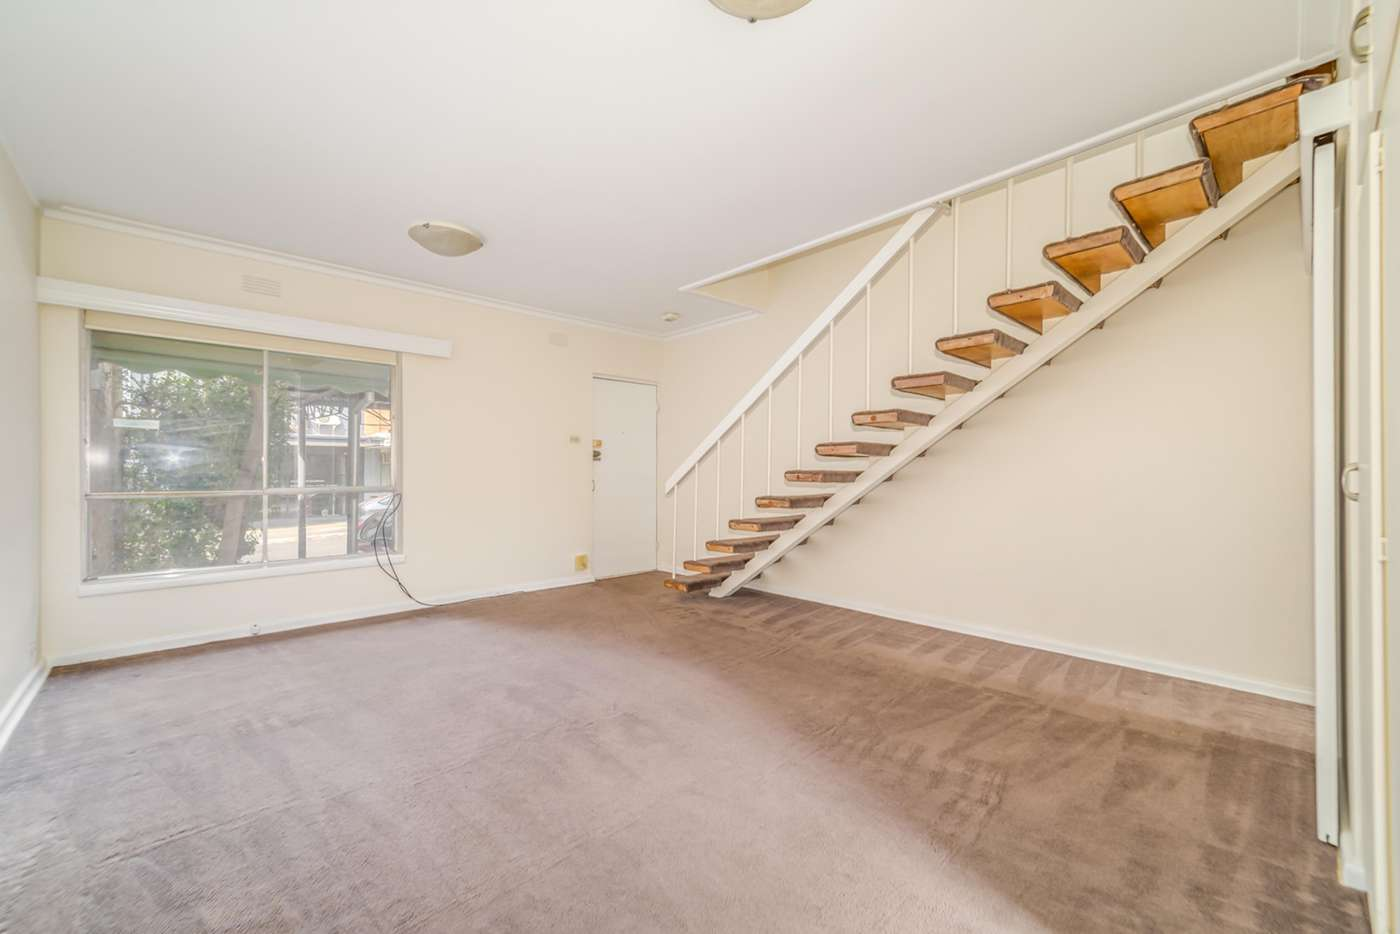 Main view of Homely townhouse listing, 8 Bardolph Street, Glen Iris VIC 3146